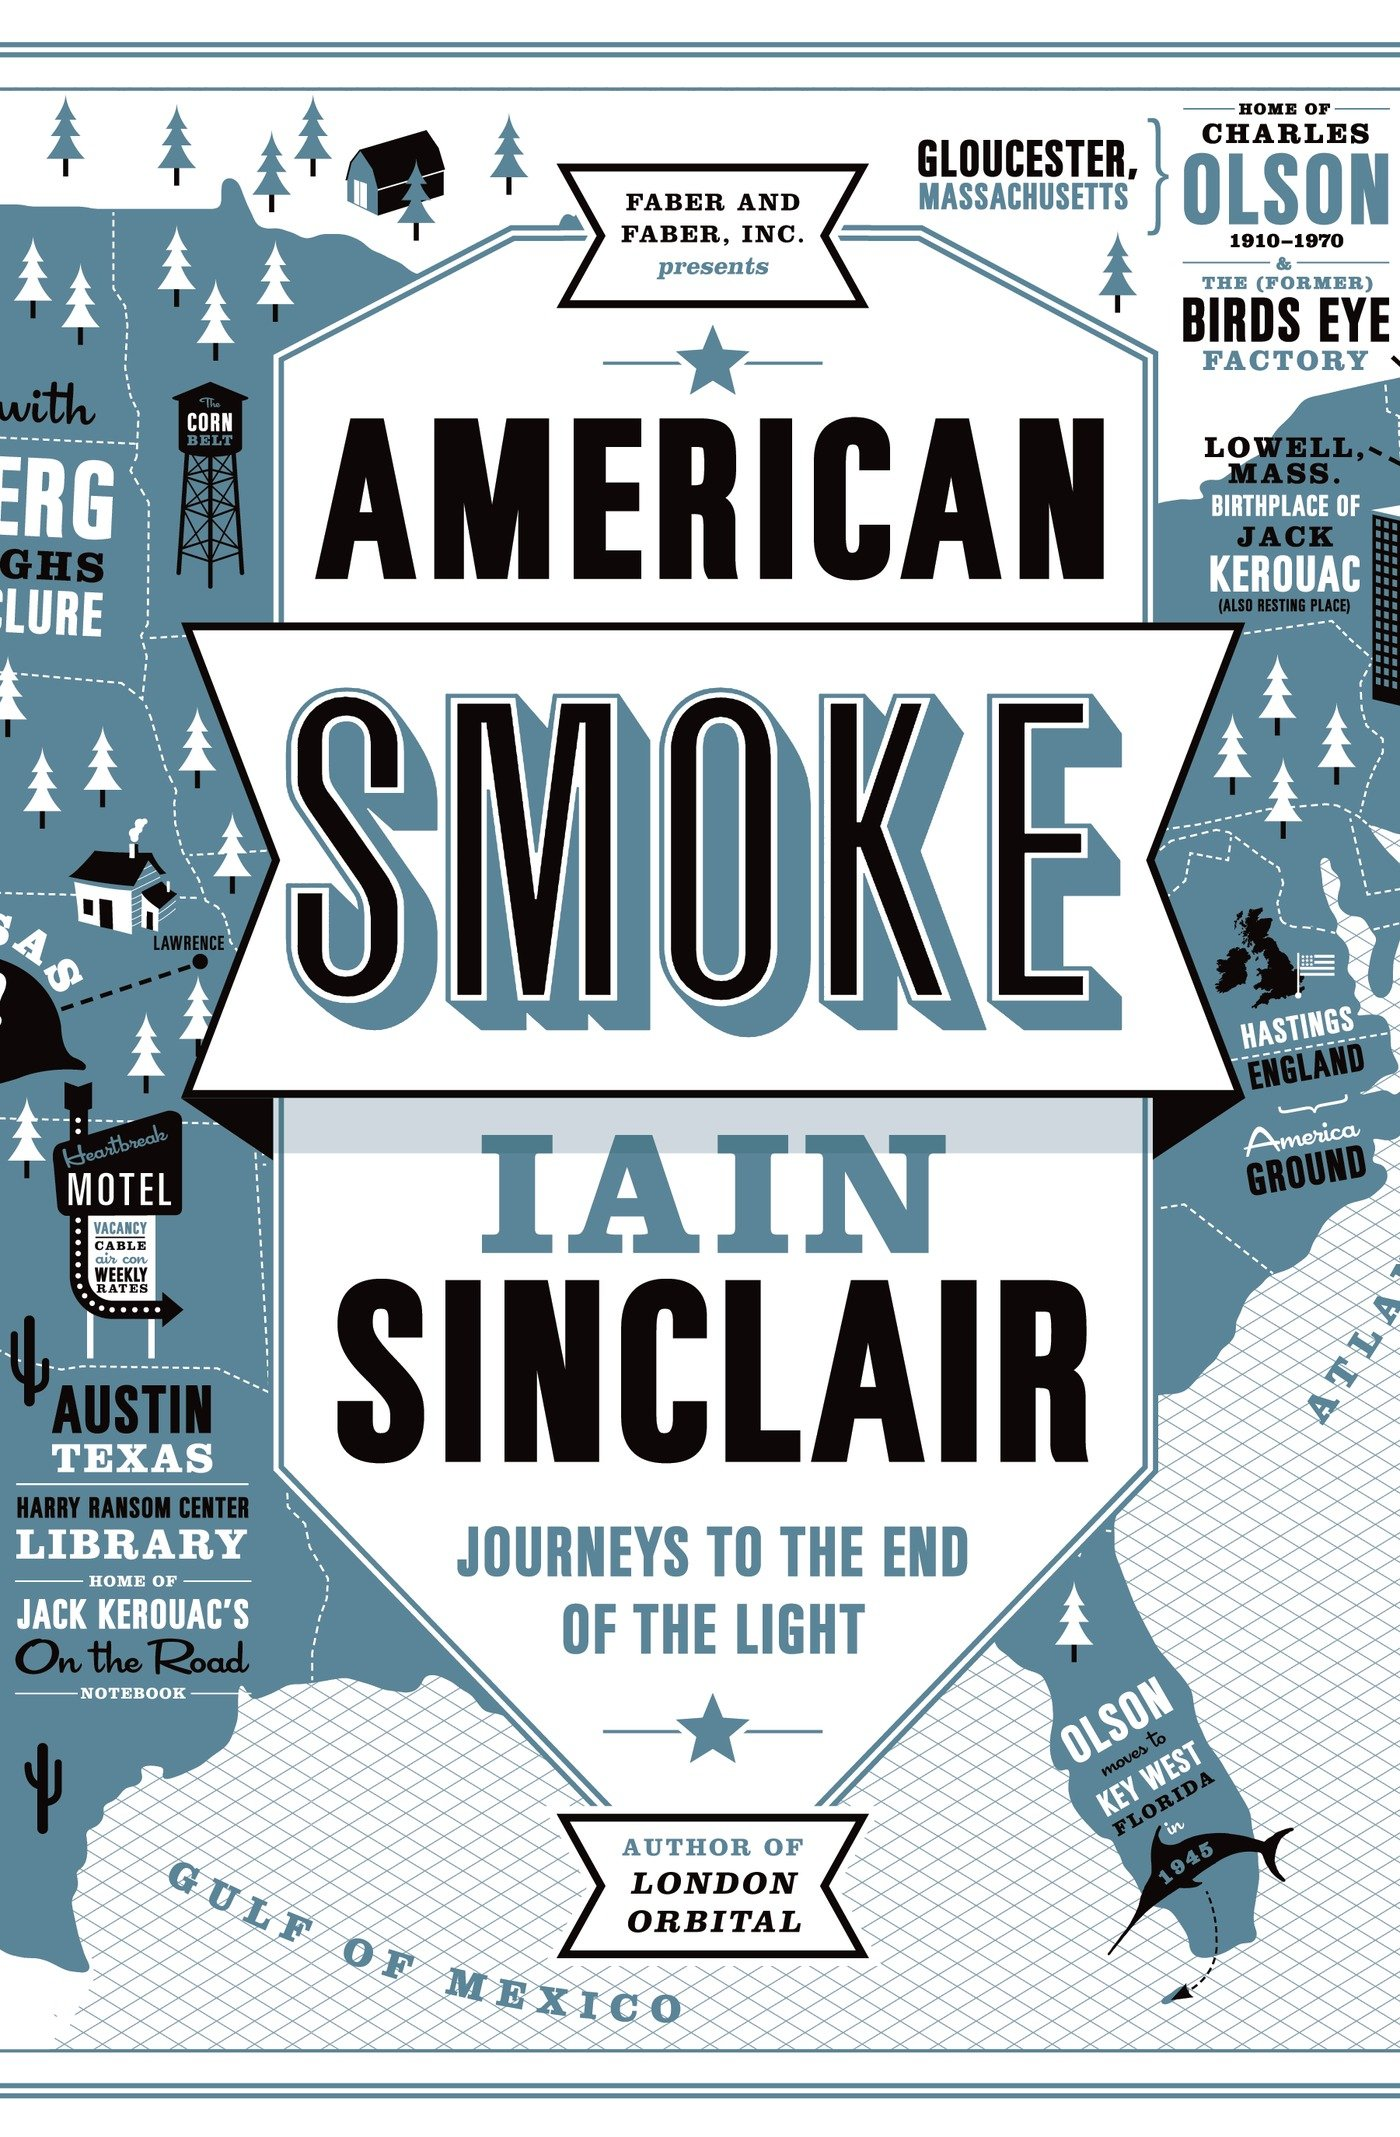 Iain Sinclair traces steps of literary heroes of the Beat Generation in new book